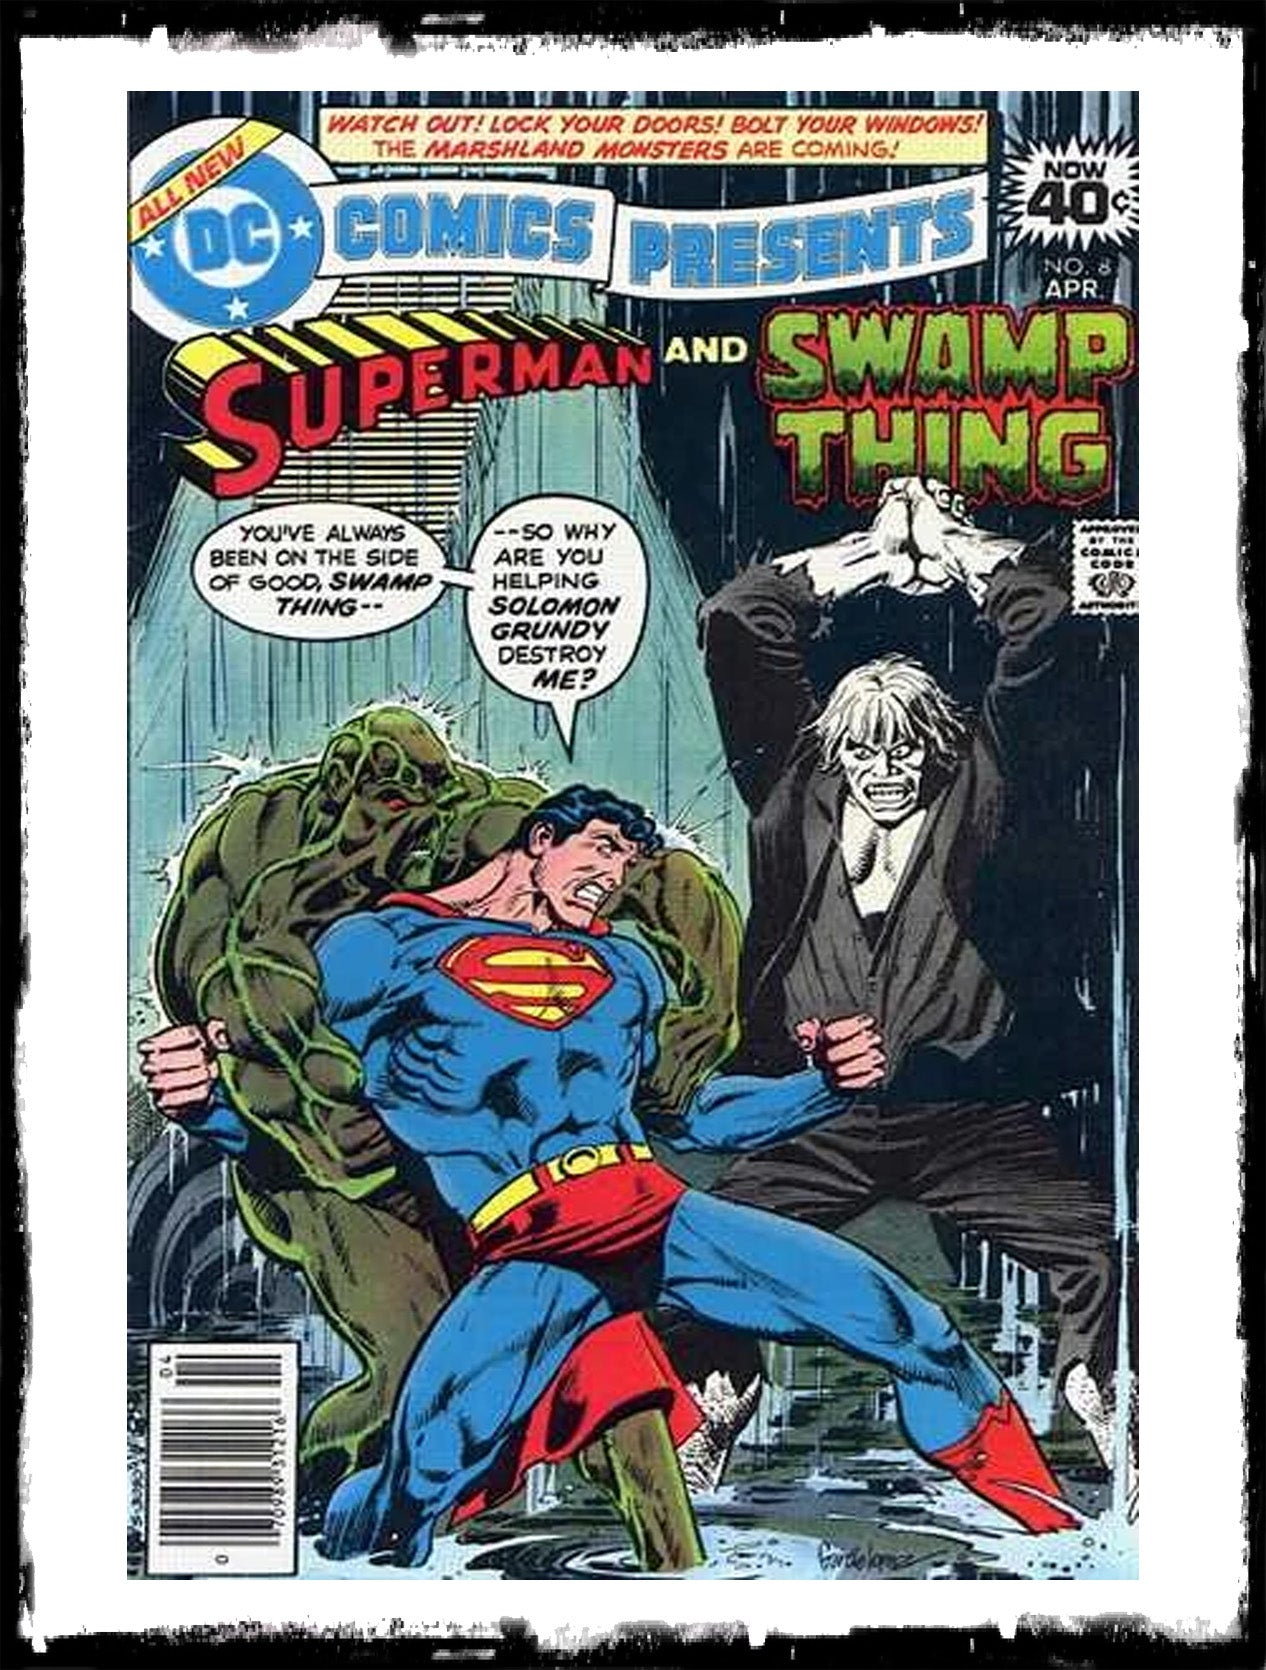 DC COMICS PRESENTS - #8 SUPERMAN & SWAMP THING (1979 - FN+/VF)